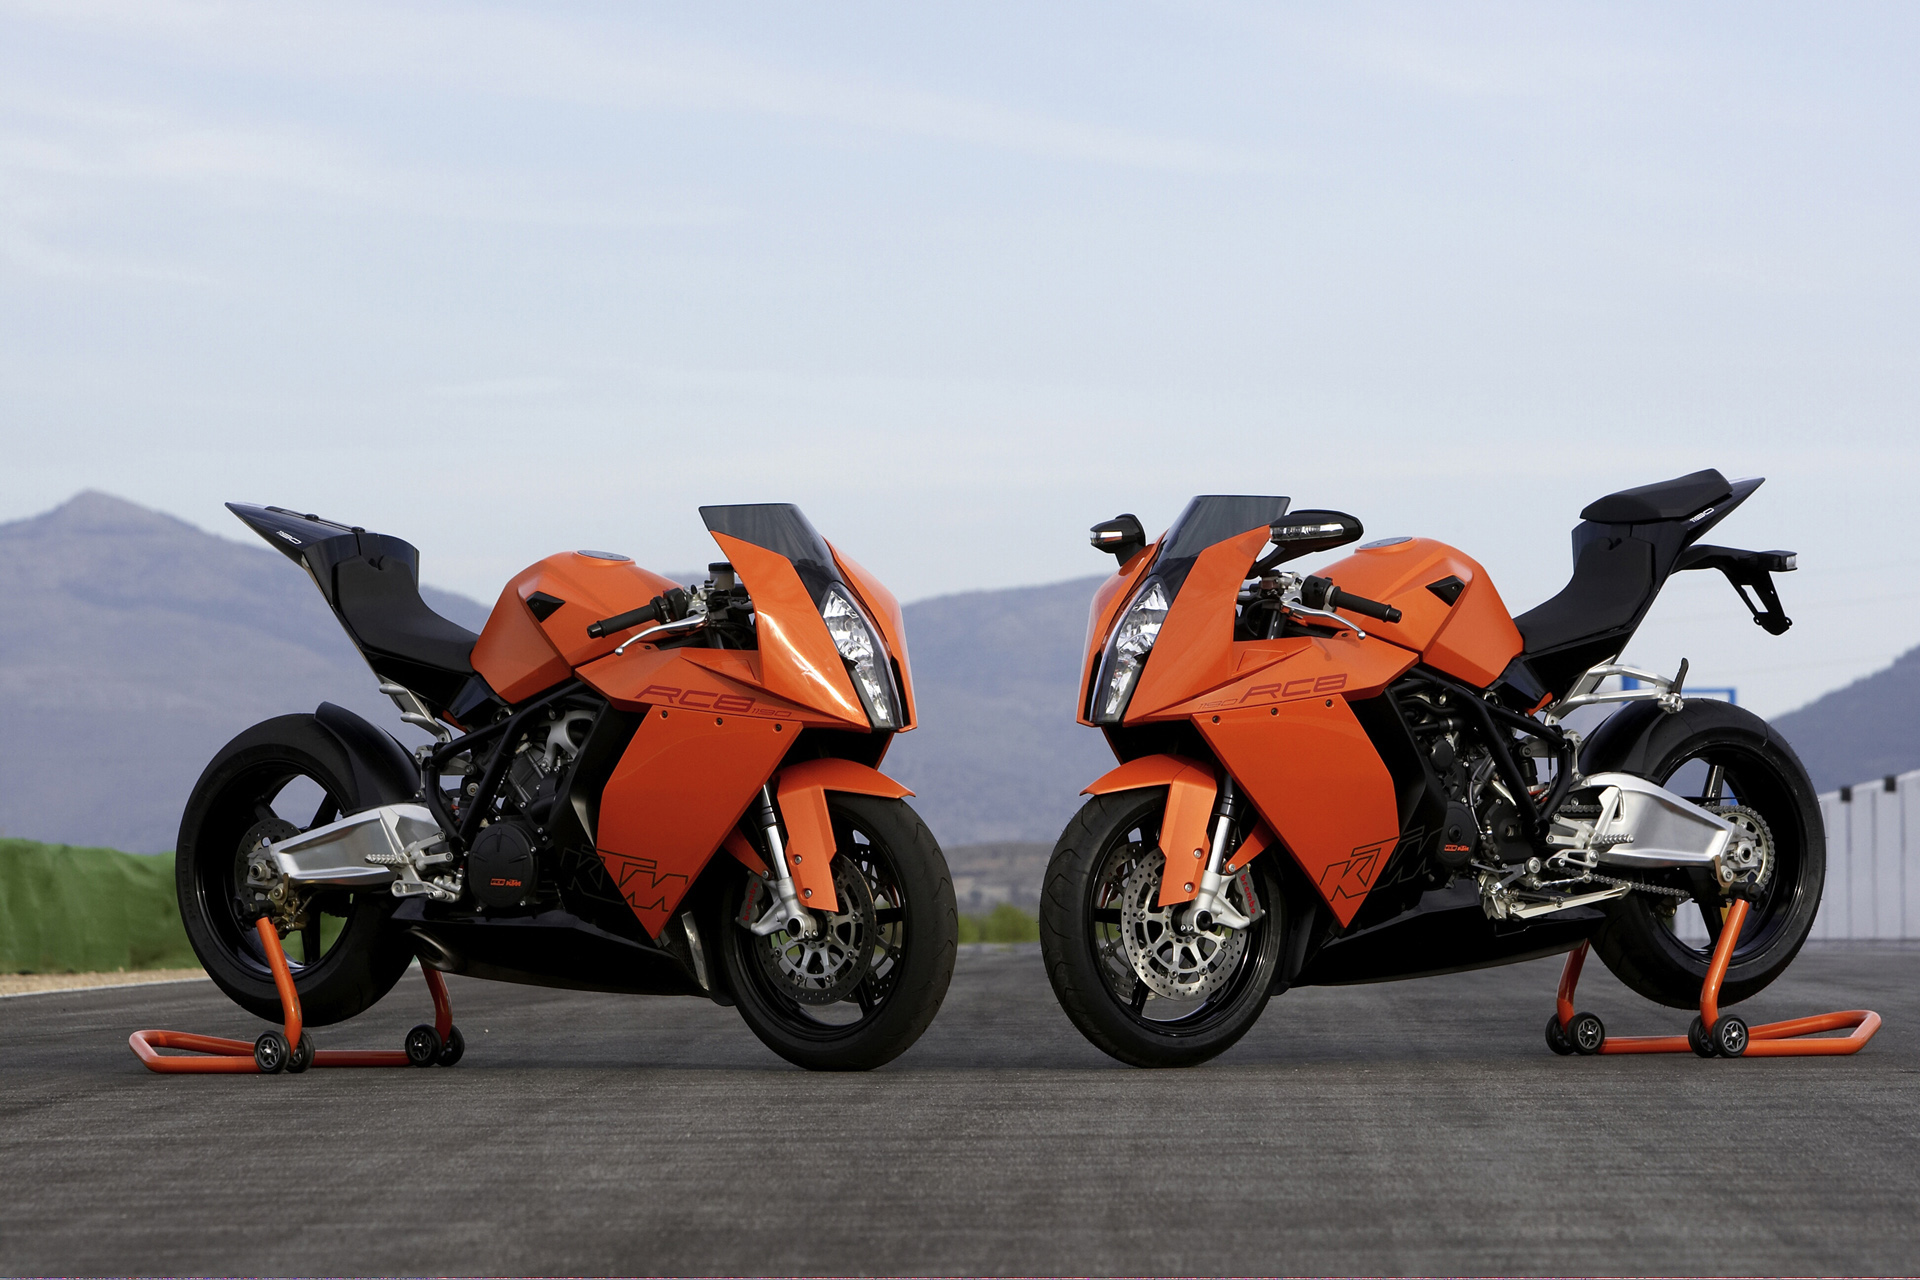 KTM 1190 RC8 Twins Wallpapers KTM 1190 RC8 Twins Myspace Backgrounds 1920x1280